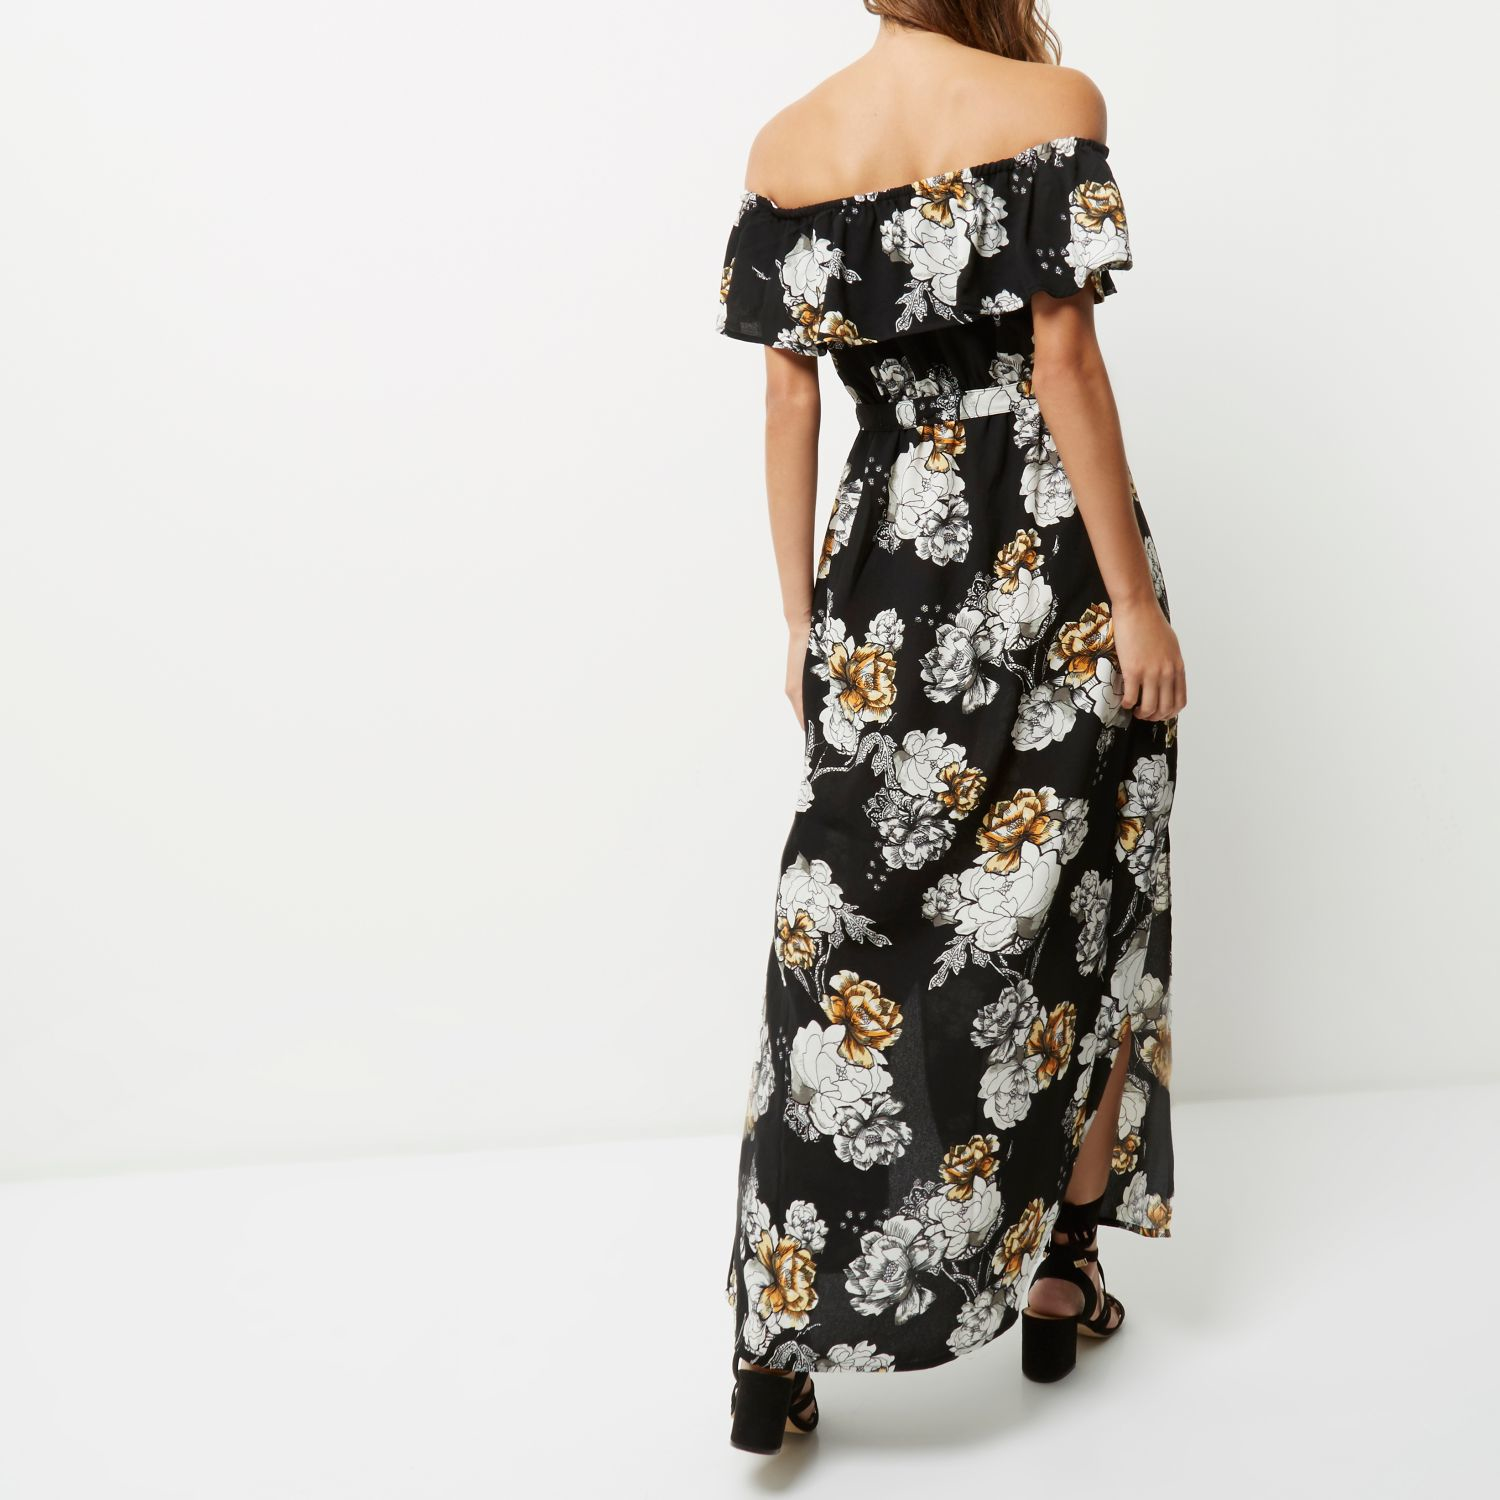 100% top quality cozy fresh various styles denmark river island black floral maxi dress 993ff a7616